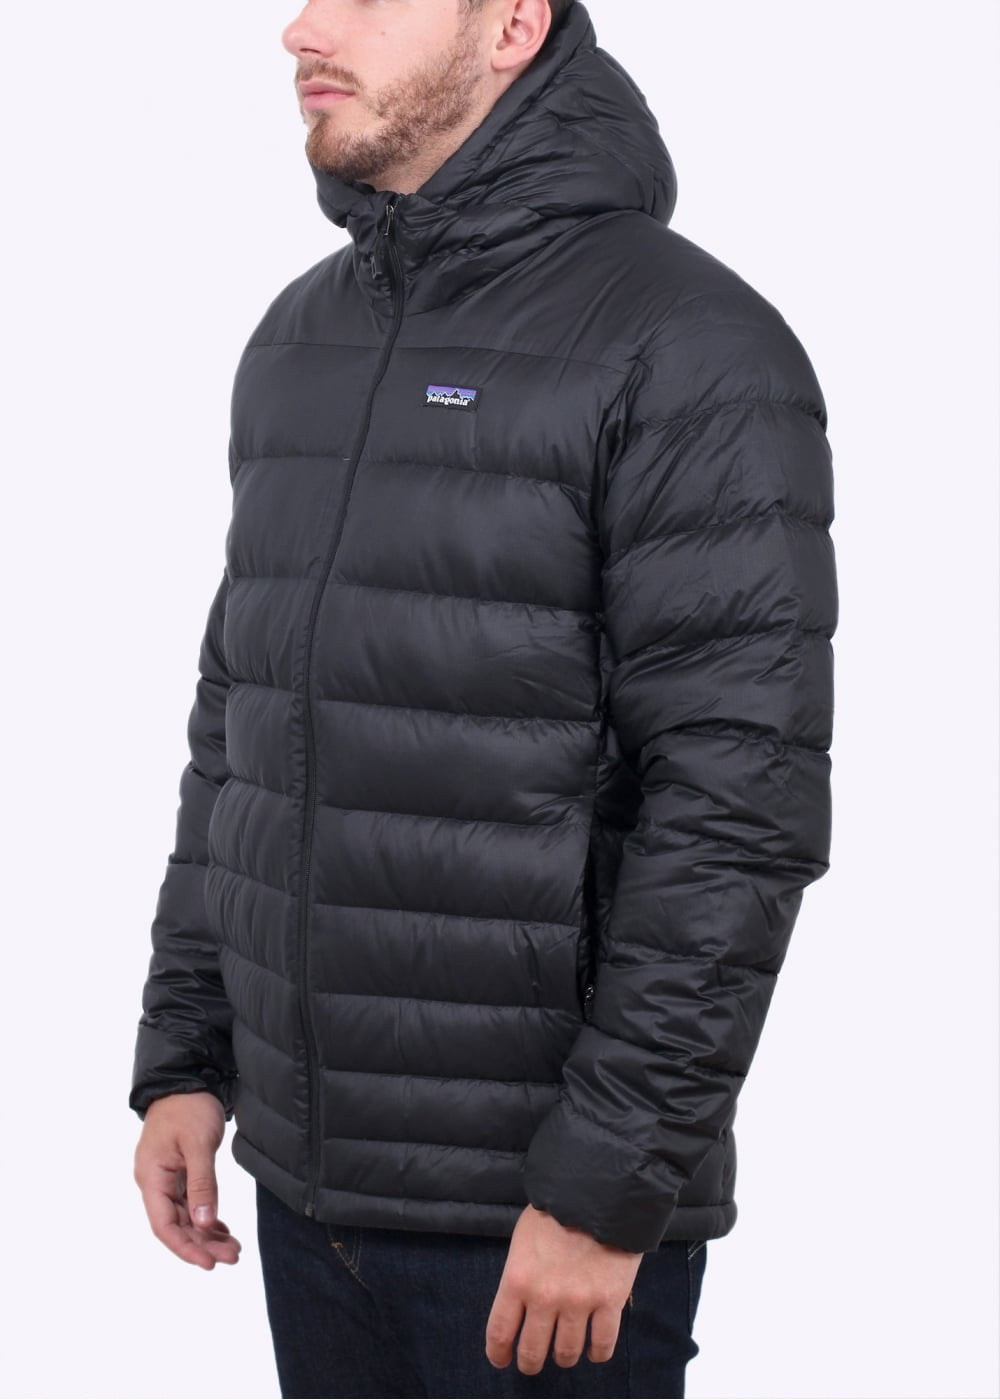 Patagonia Hi Loft Down Hoody Black Patagonia From